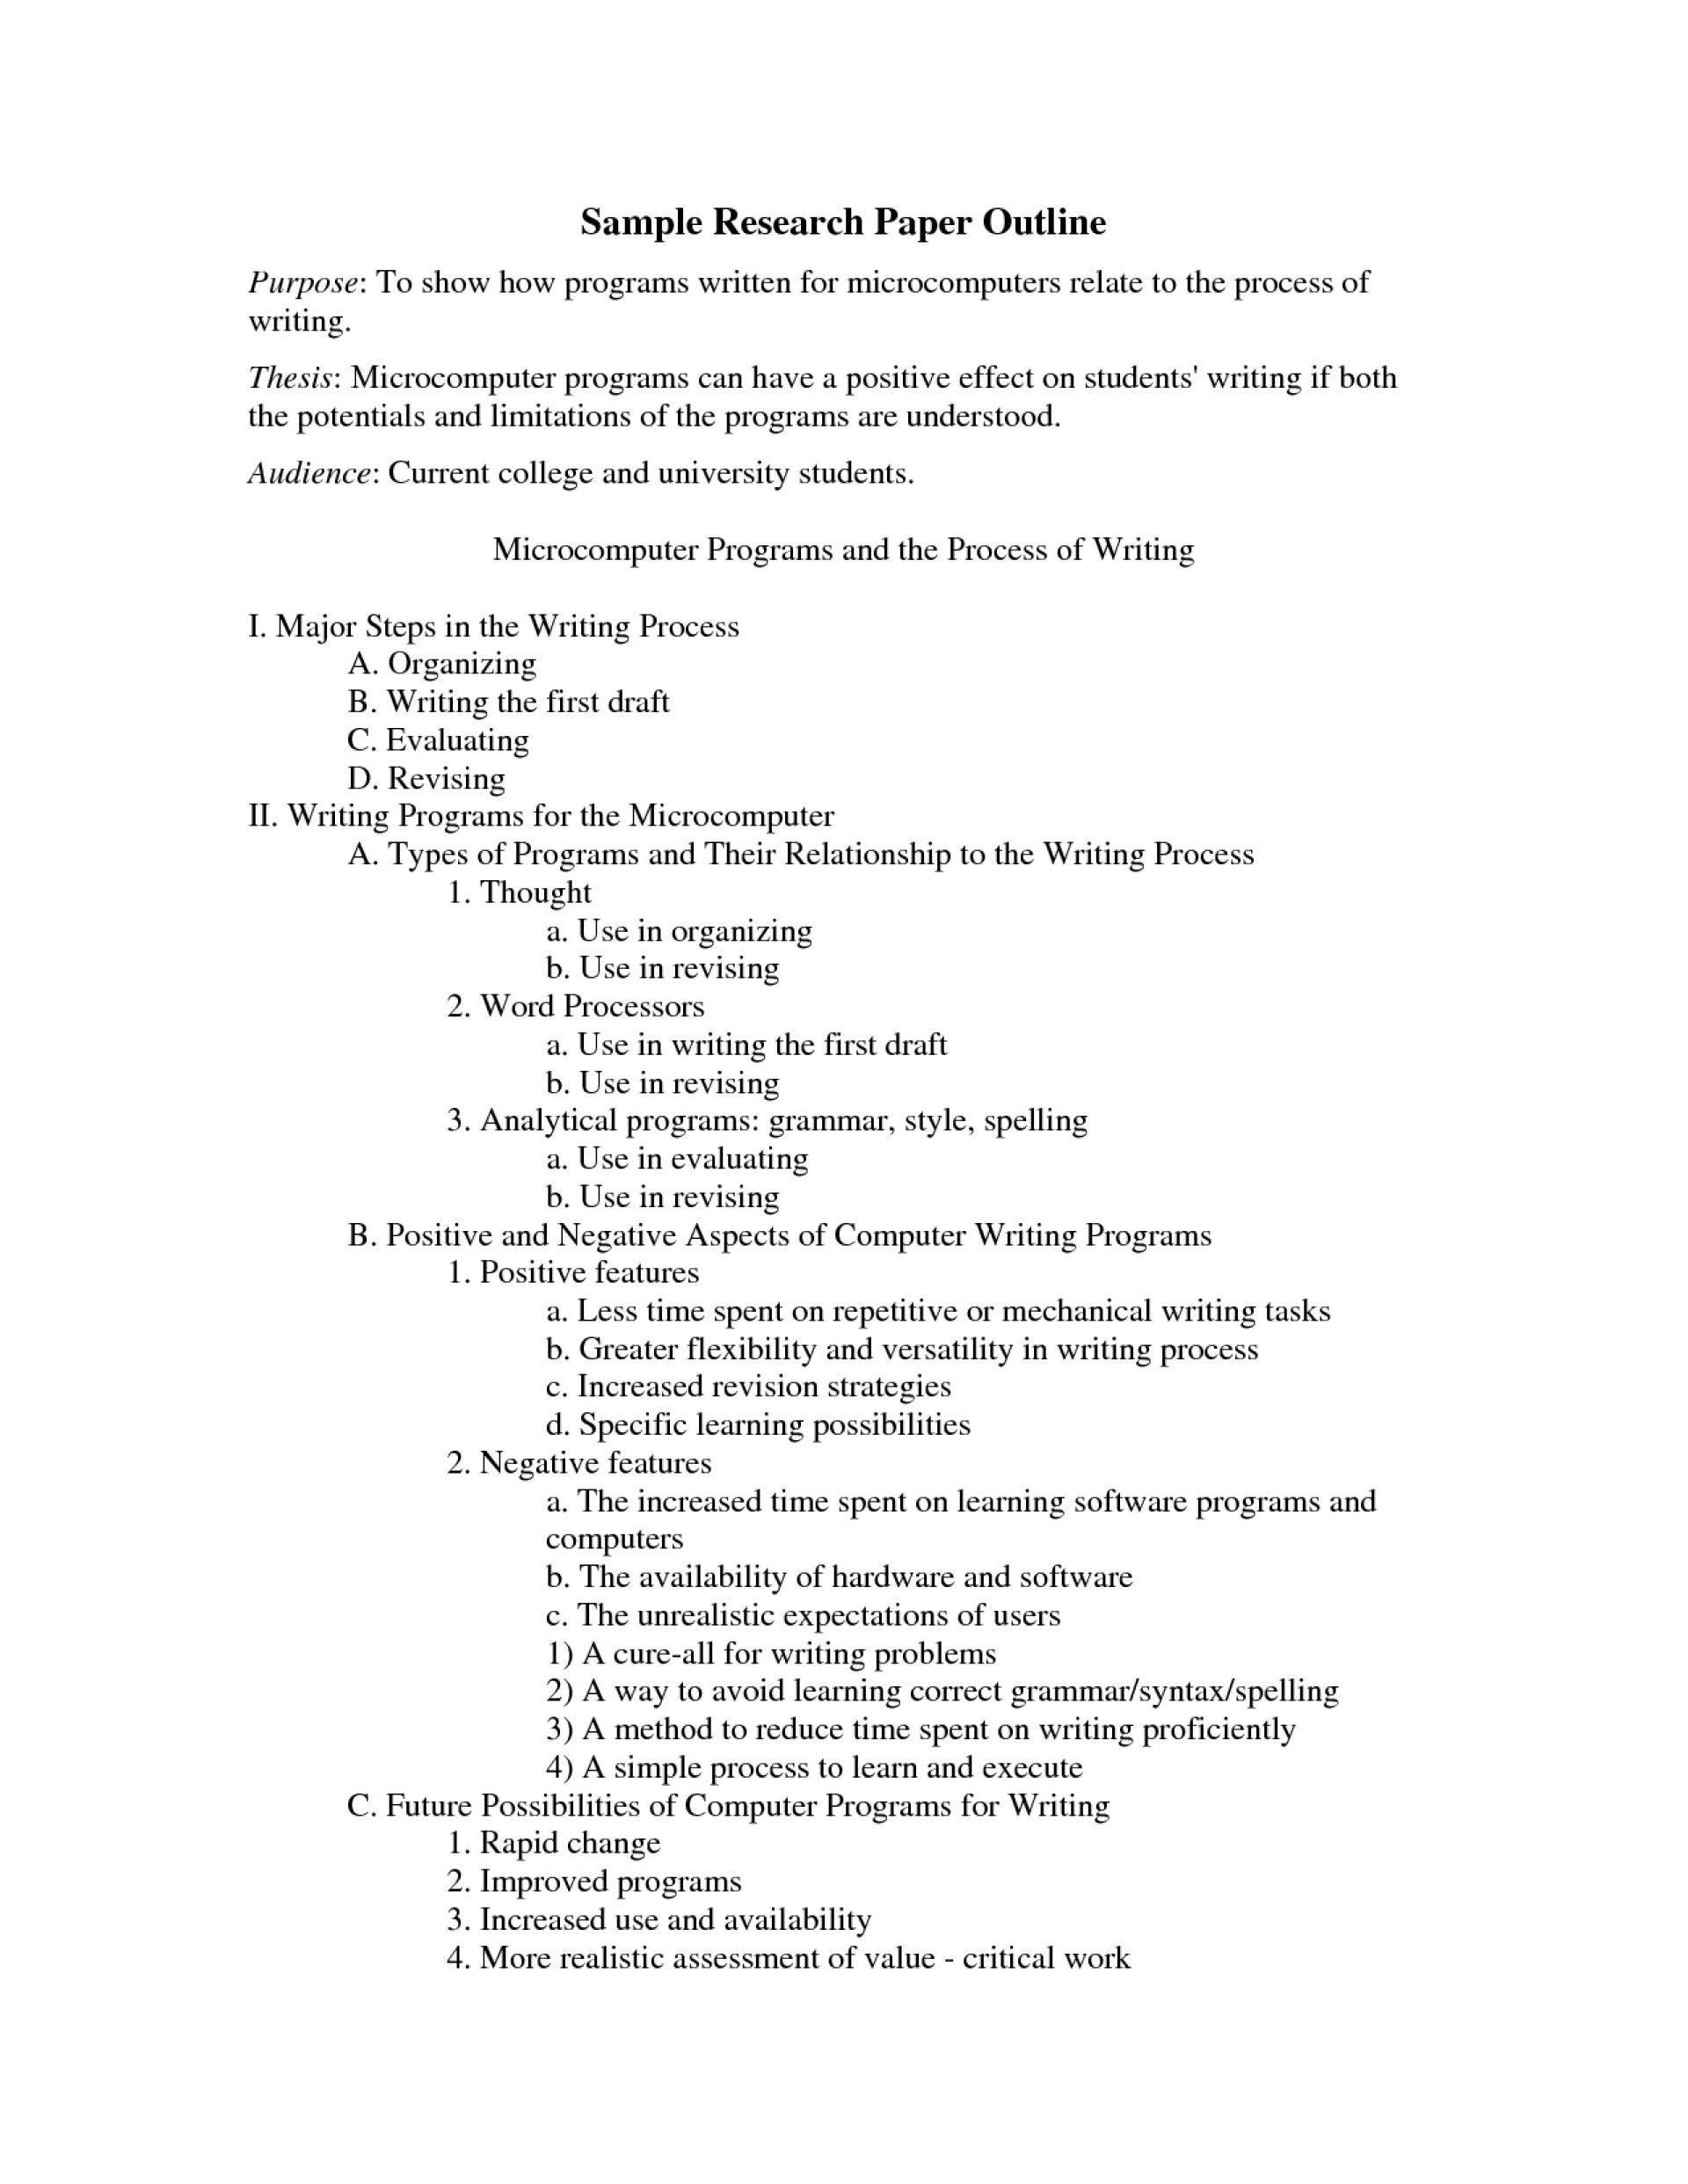 003 College Research Paper Outline Examples 477364mat Incredible Format For Mla Sample Sentence Example Thesis Statement 1920